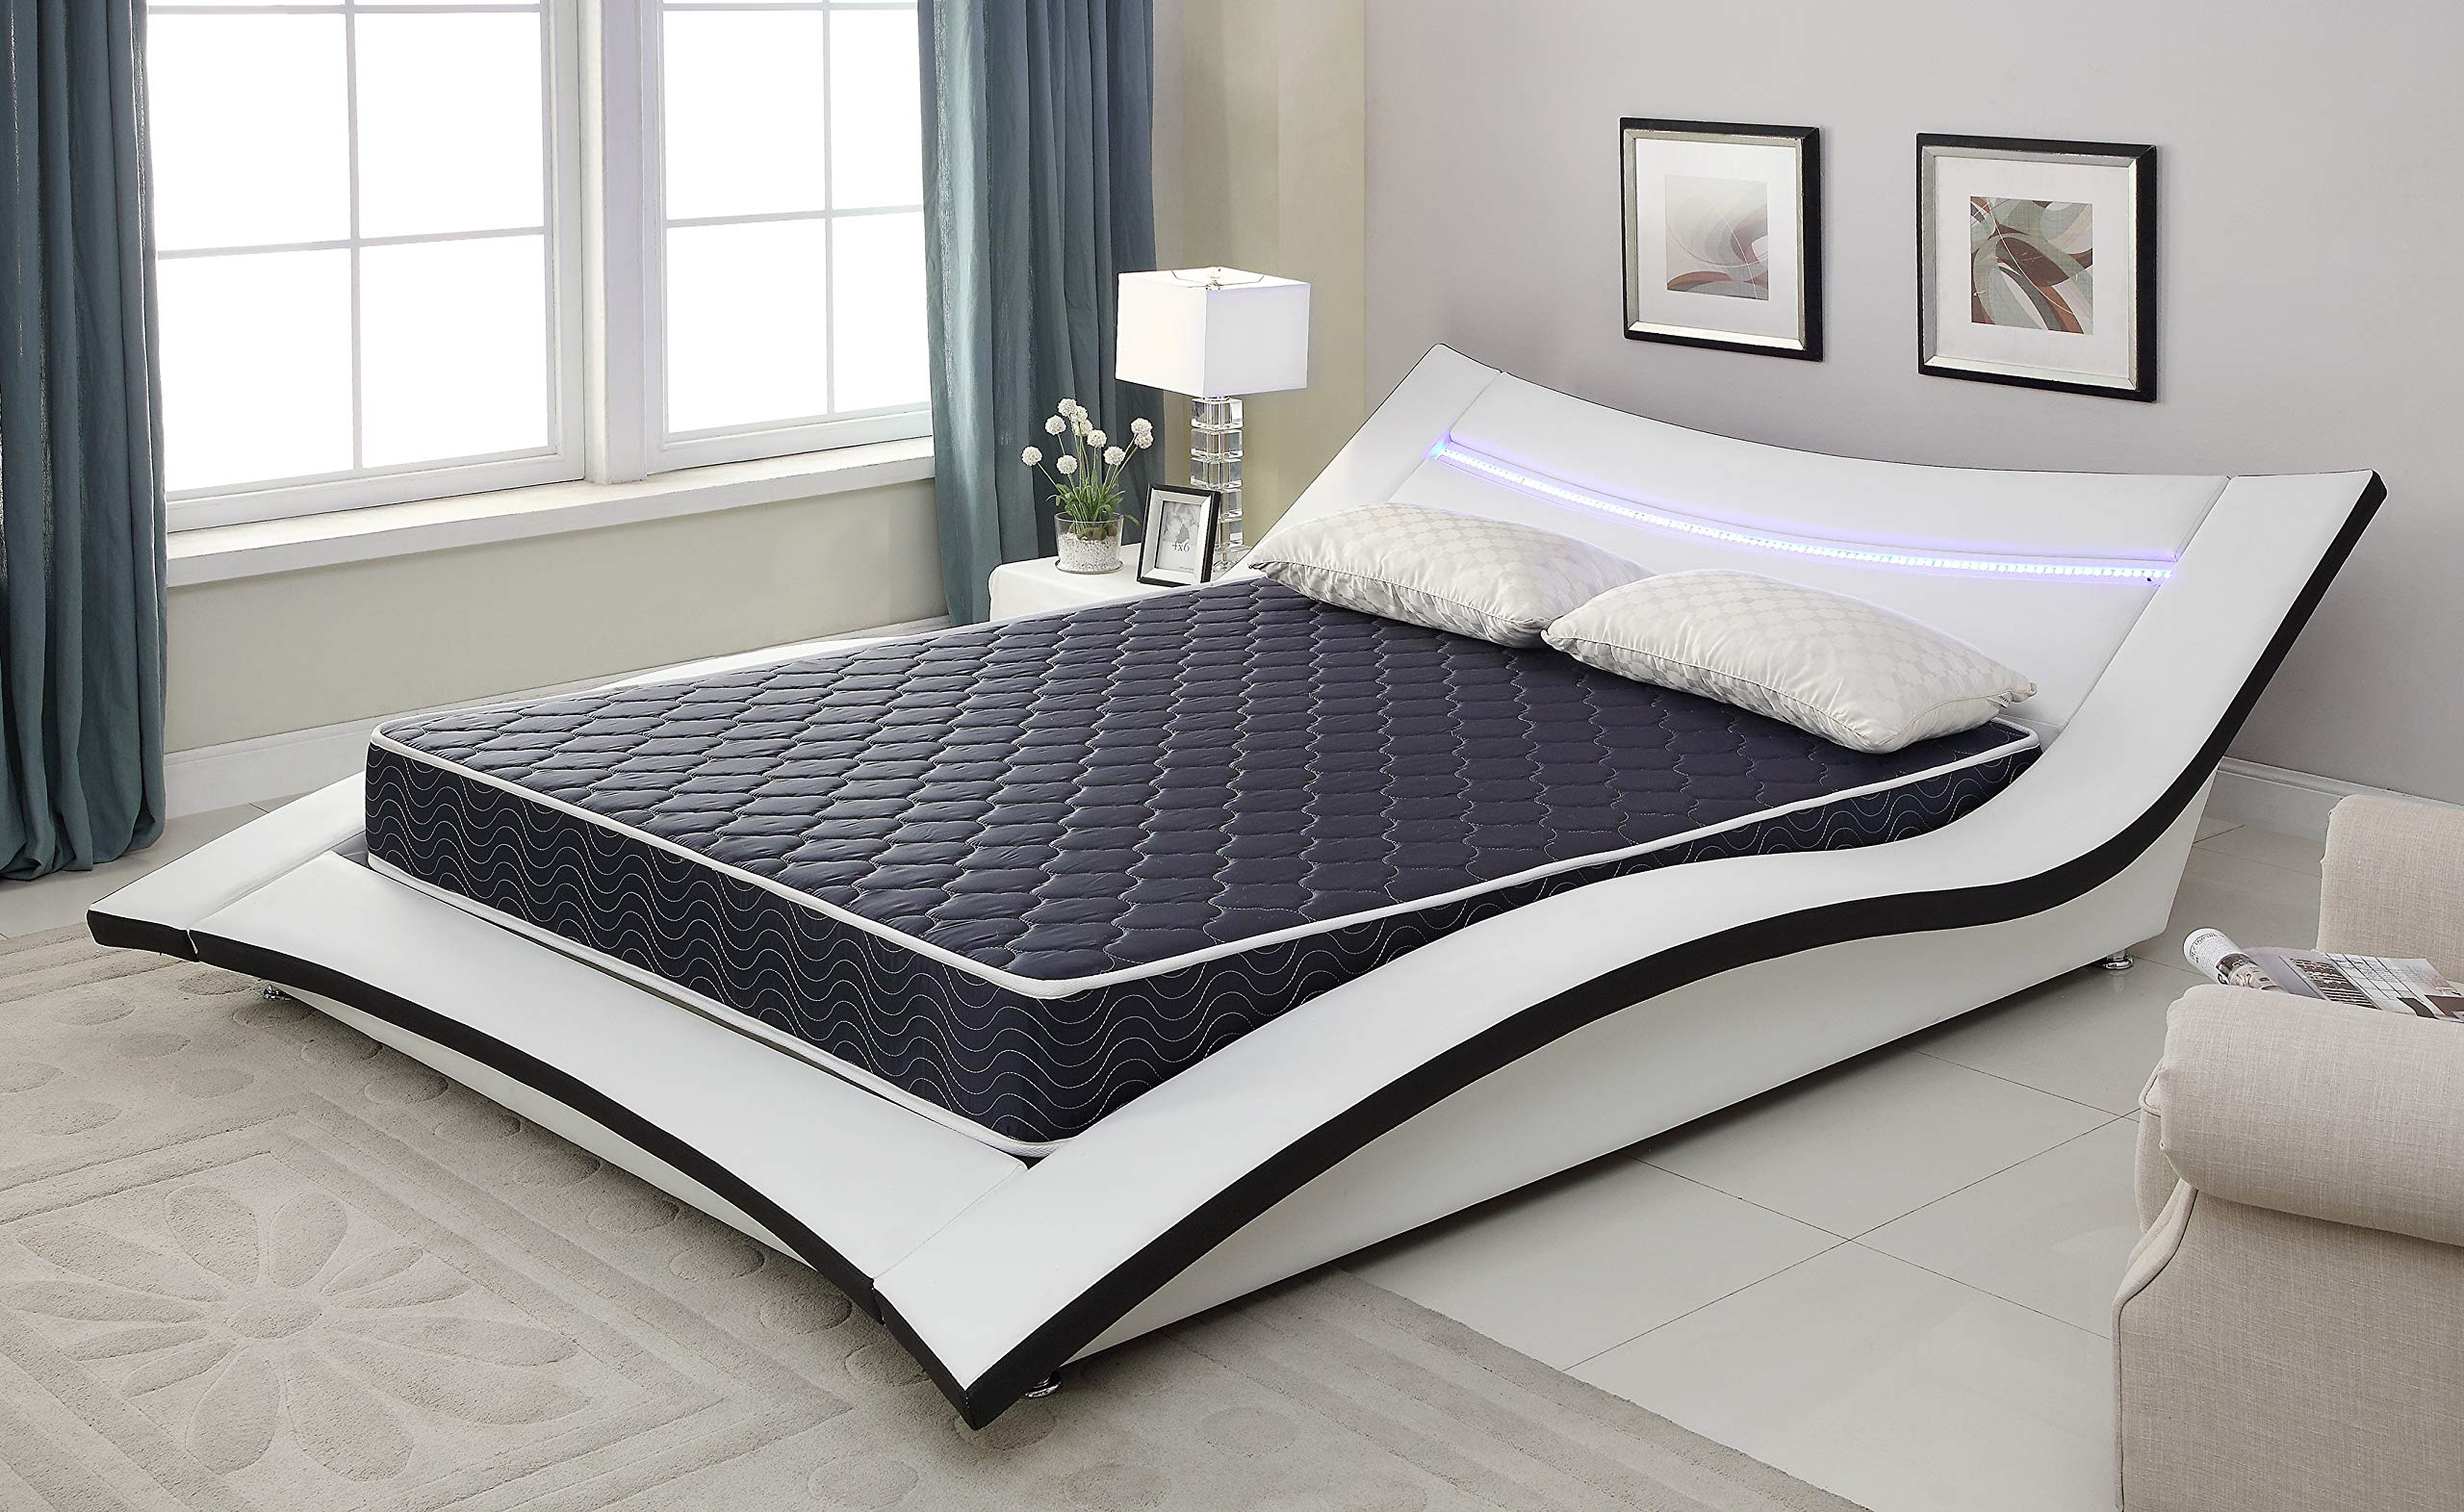 AC Pacific 6'' Foam Mattress Covered in a Stylish Navy Blue Waterproof Fabric, Twin, Navy Blue by AC Pacific